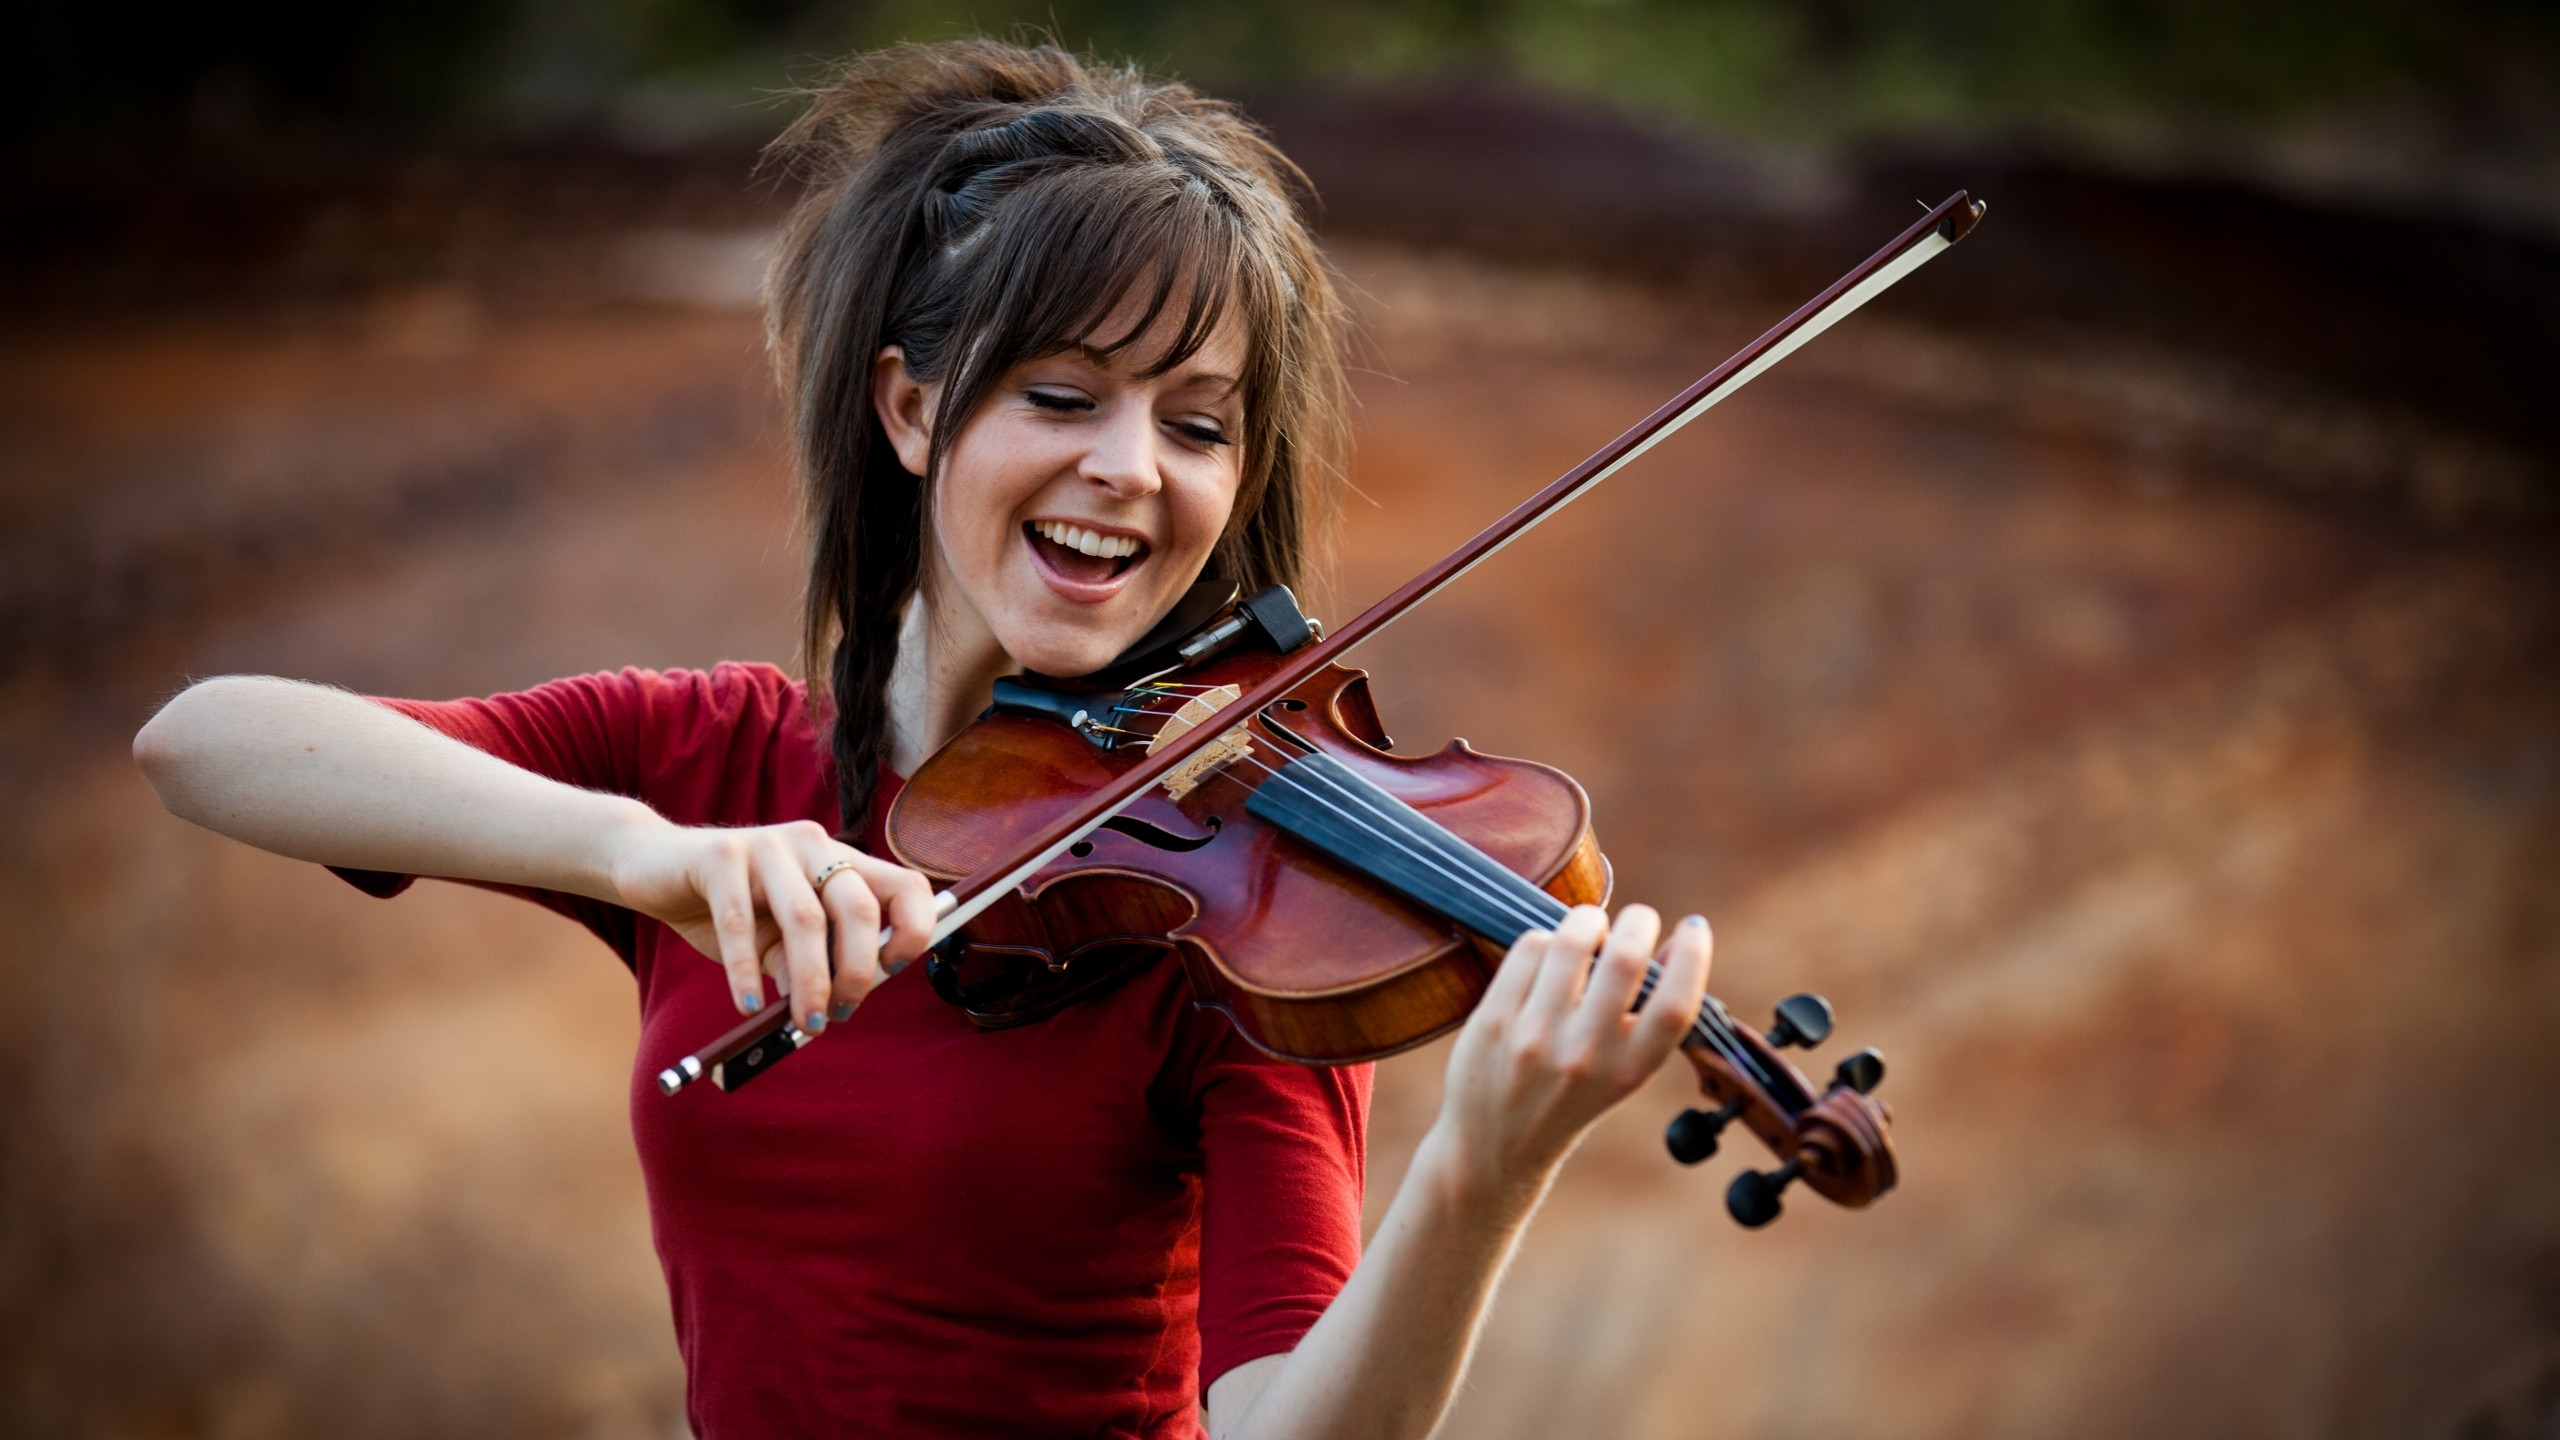 HQ Lindsey Stirling Wallpapers | File 463.66Kb